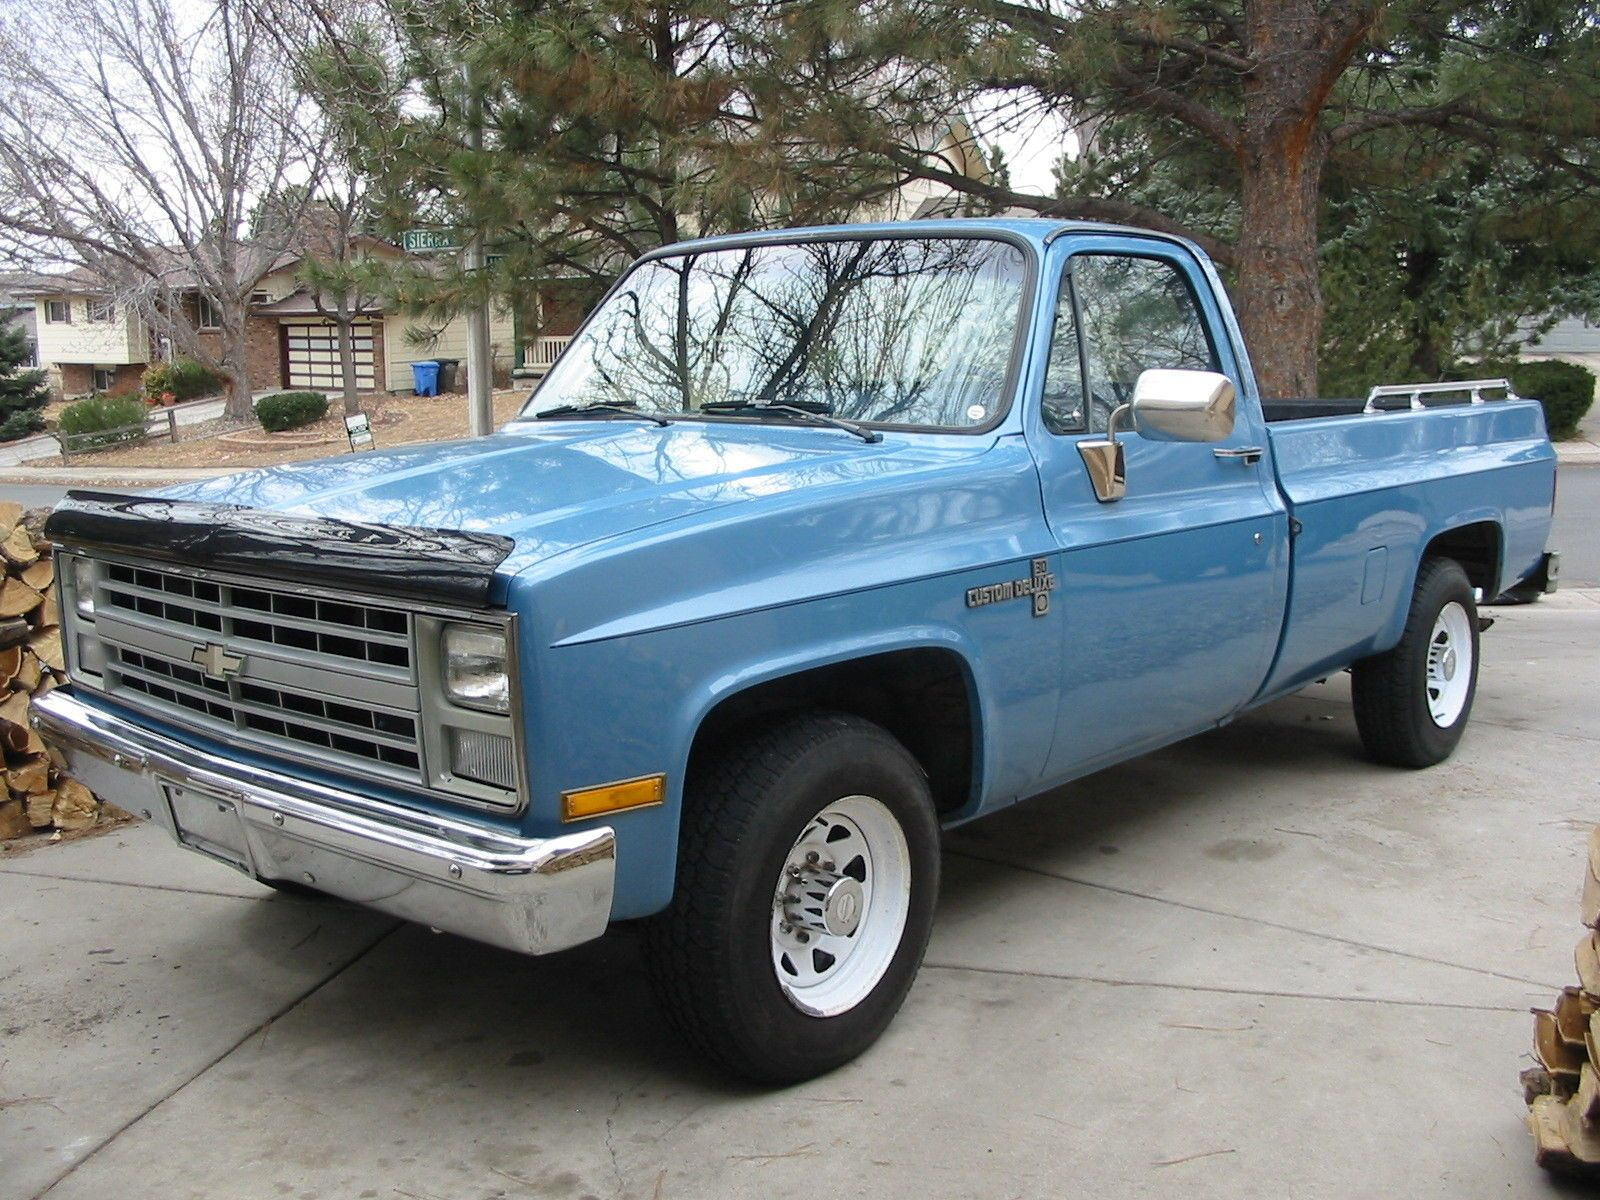 1985 Chevrolet Pickup Rare 85 Chevy C20 HD Camper Special ...